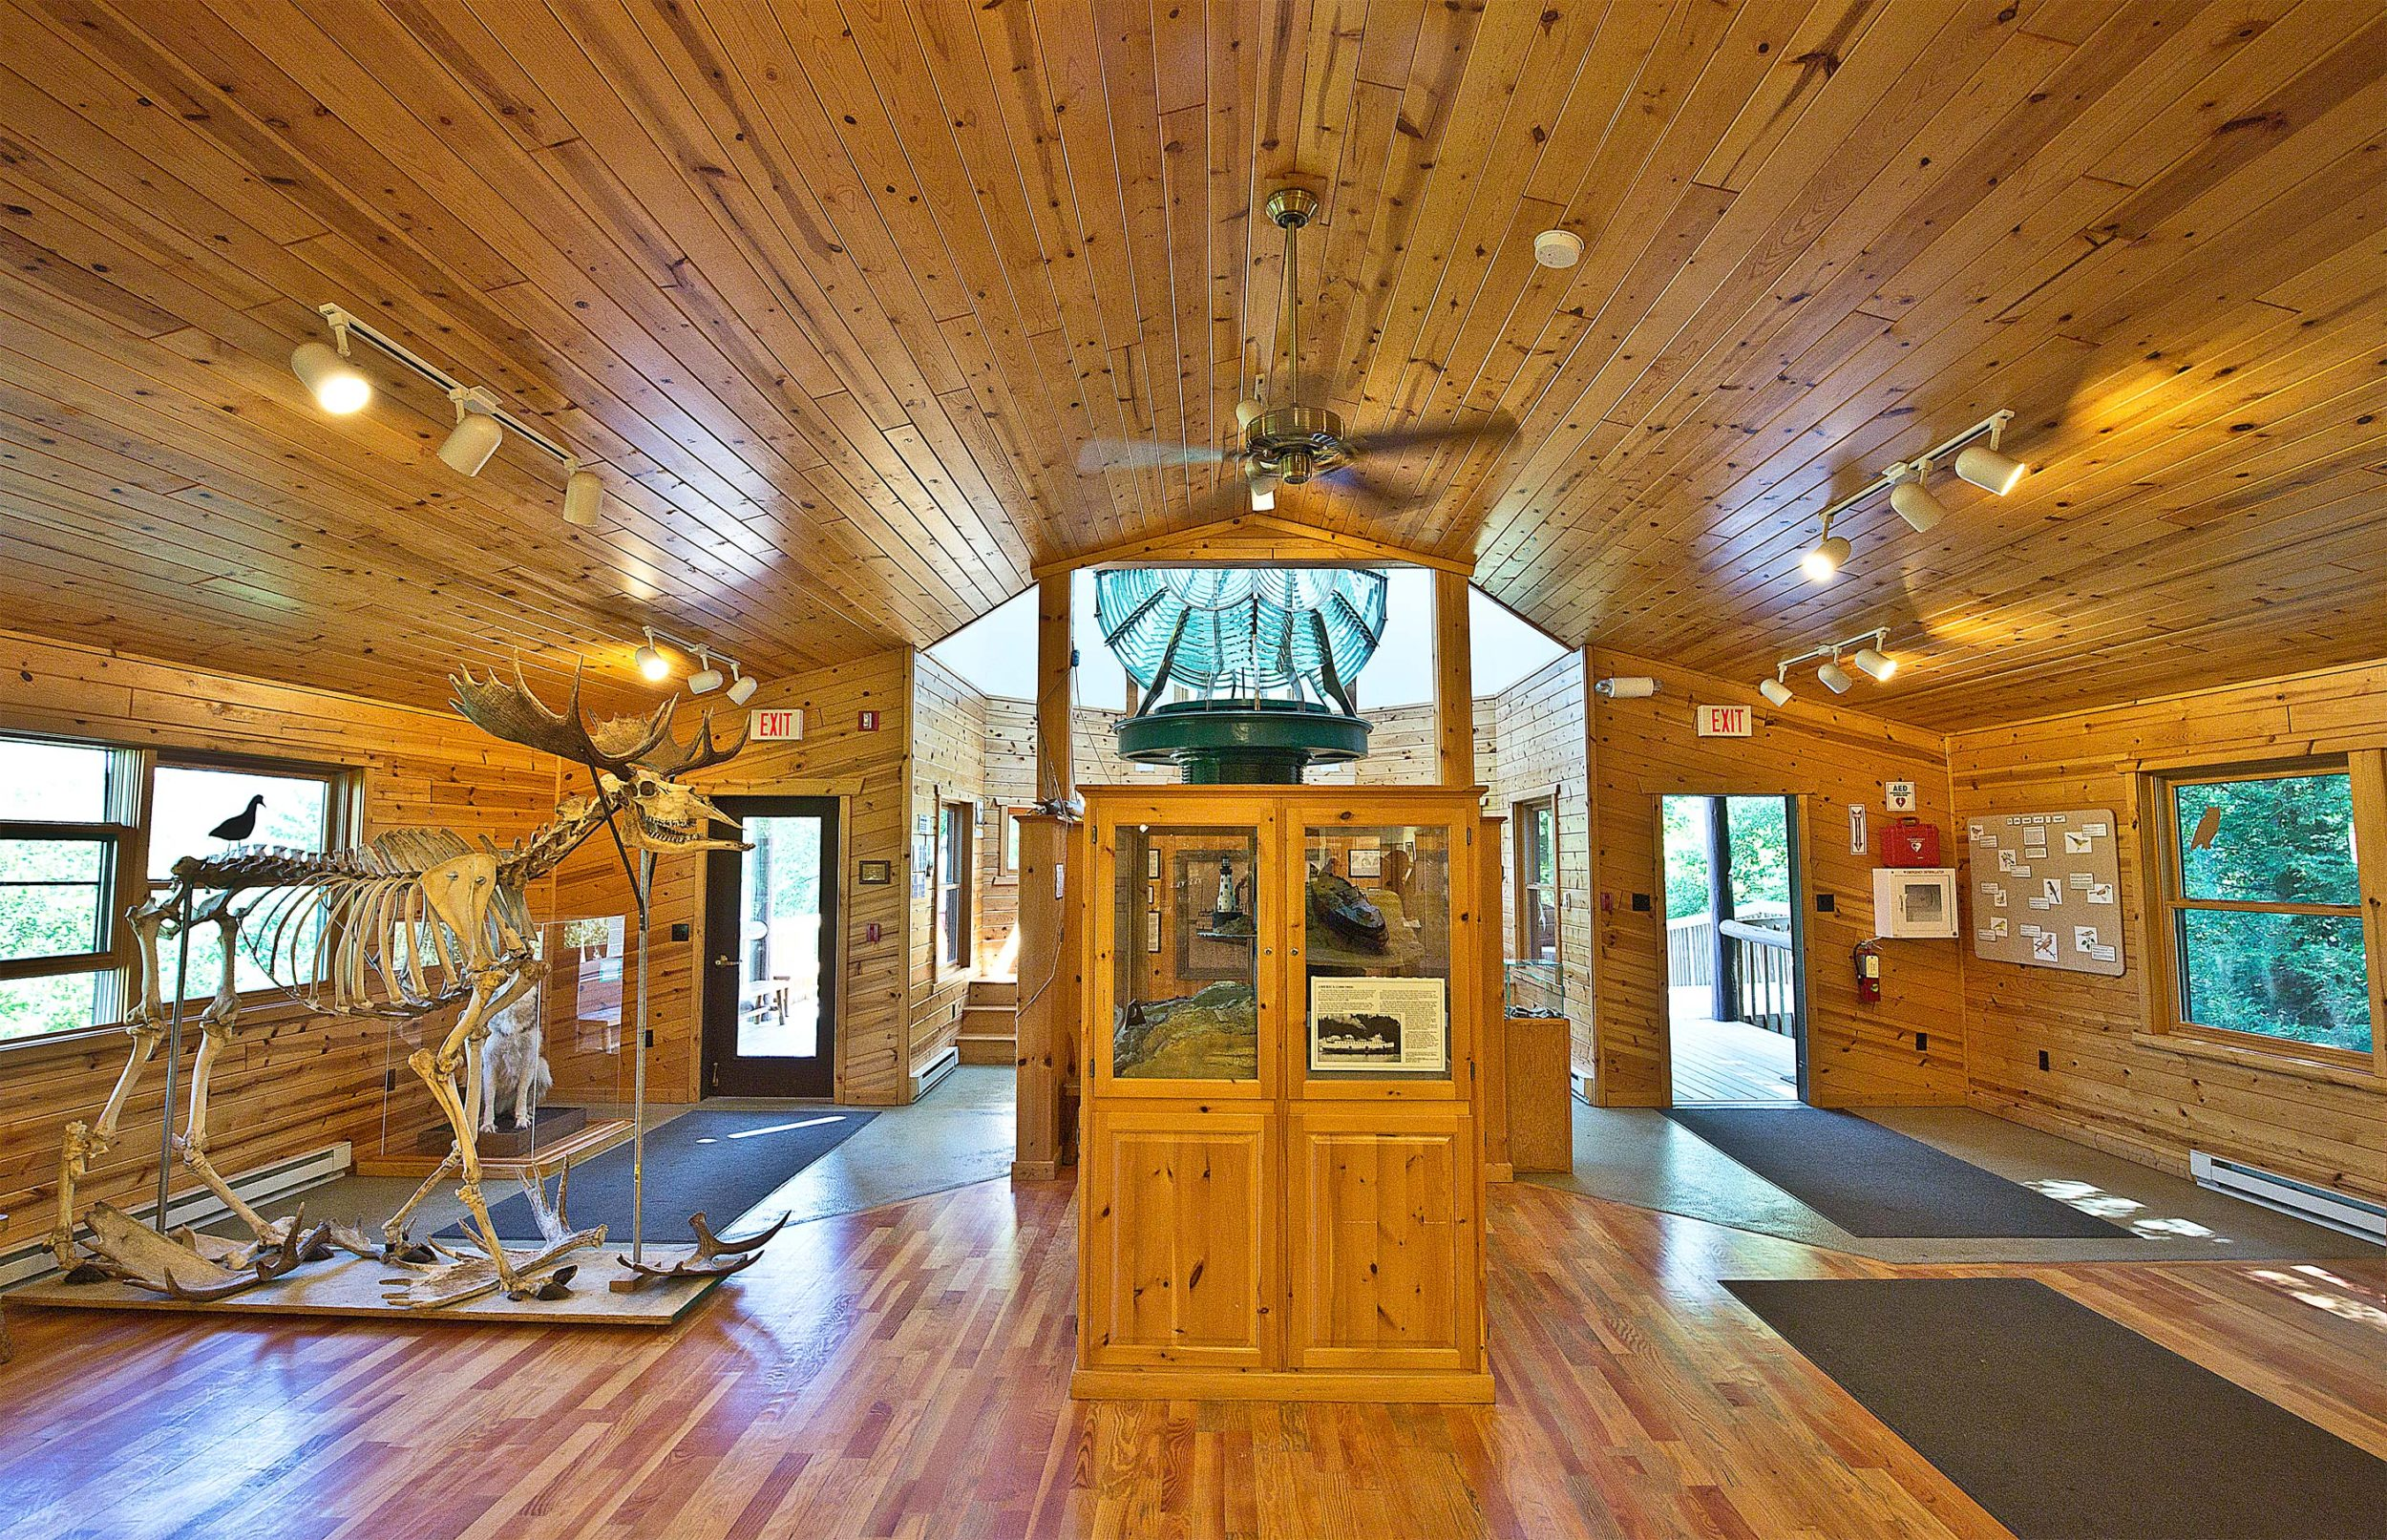 Inside the Windigo Visitors Center in Isle Royale National Park